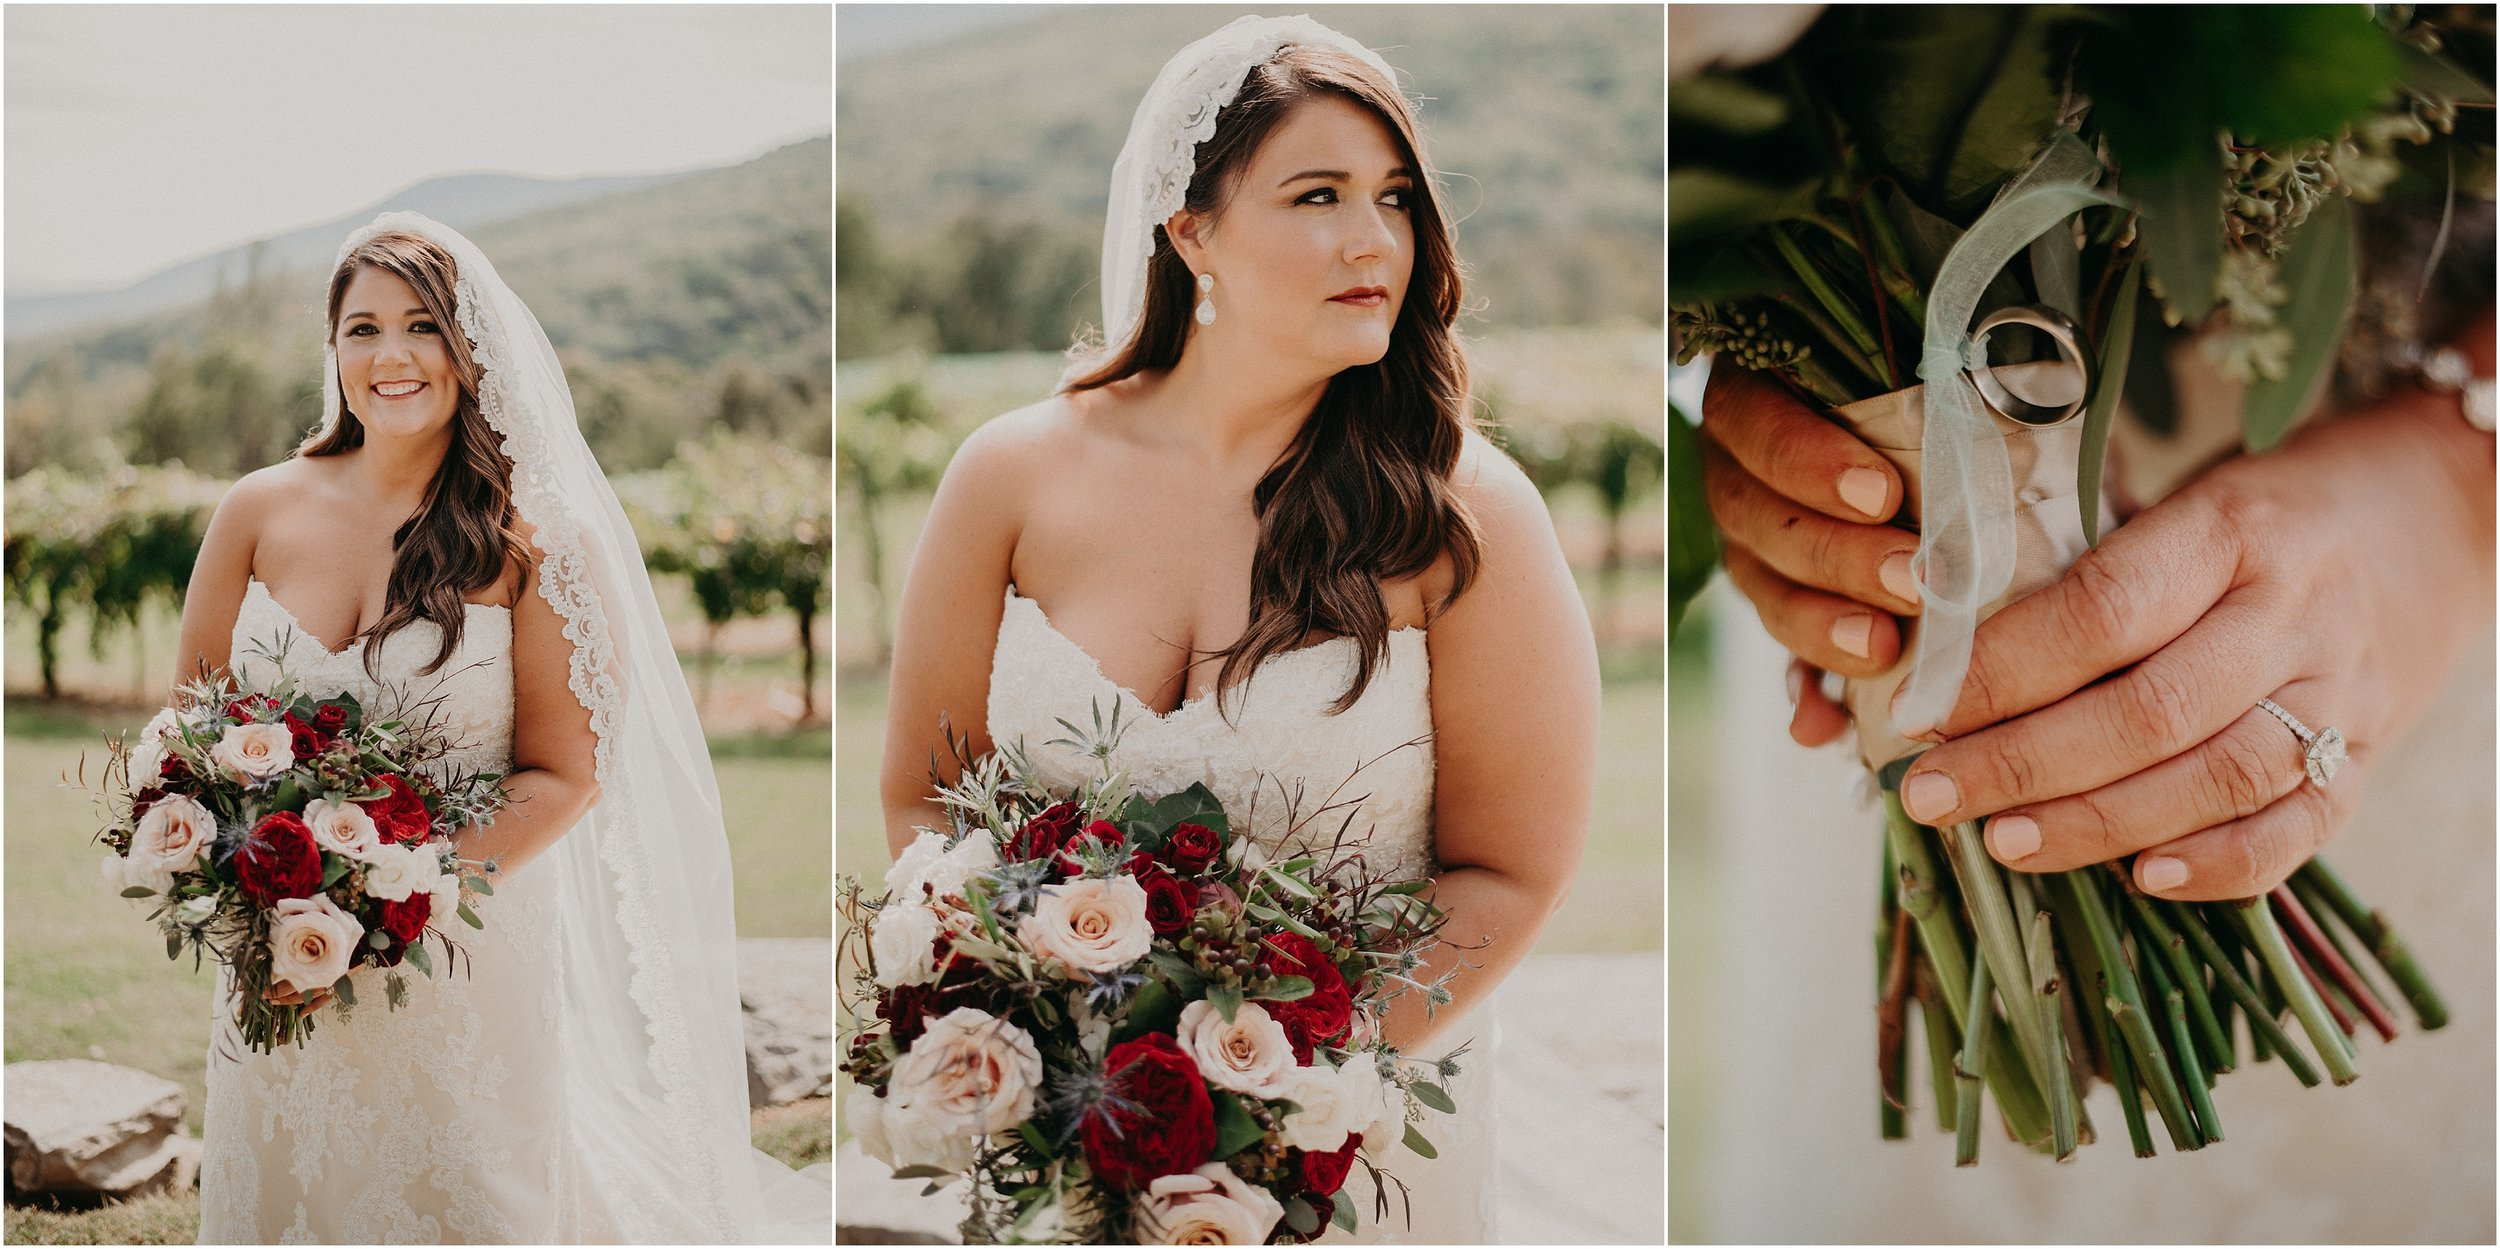 Timeless bridal portraits with cathedral veil and bouquet by Chickamauga Florist